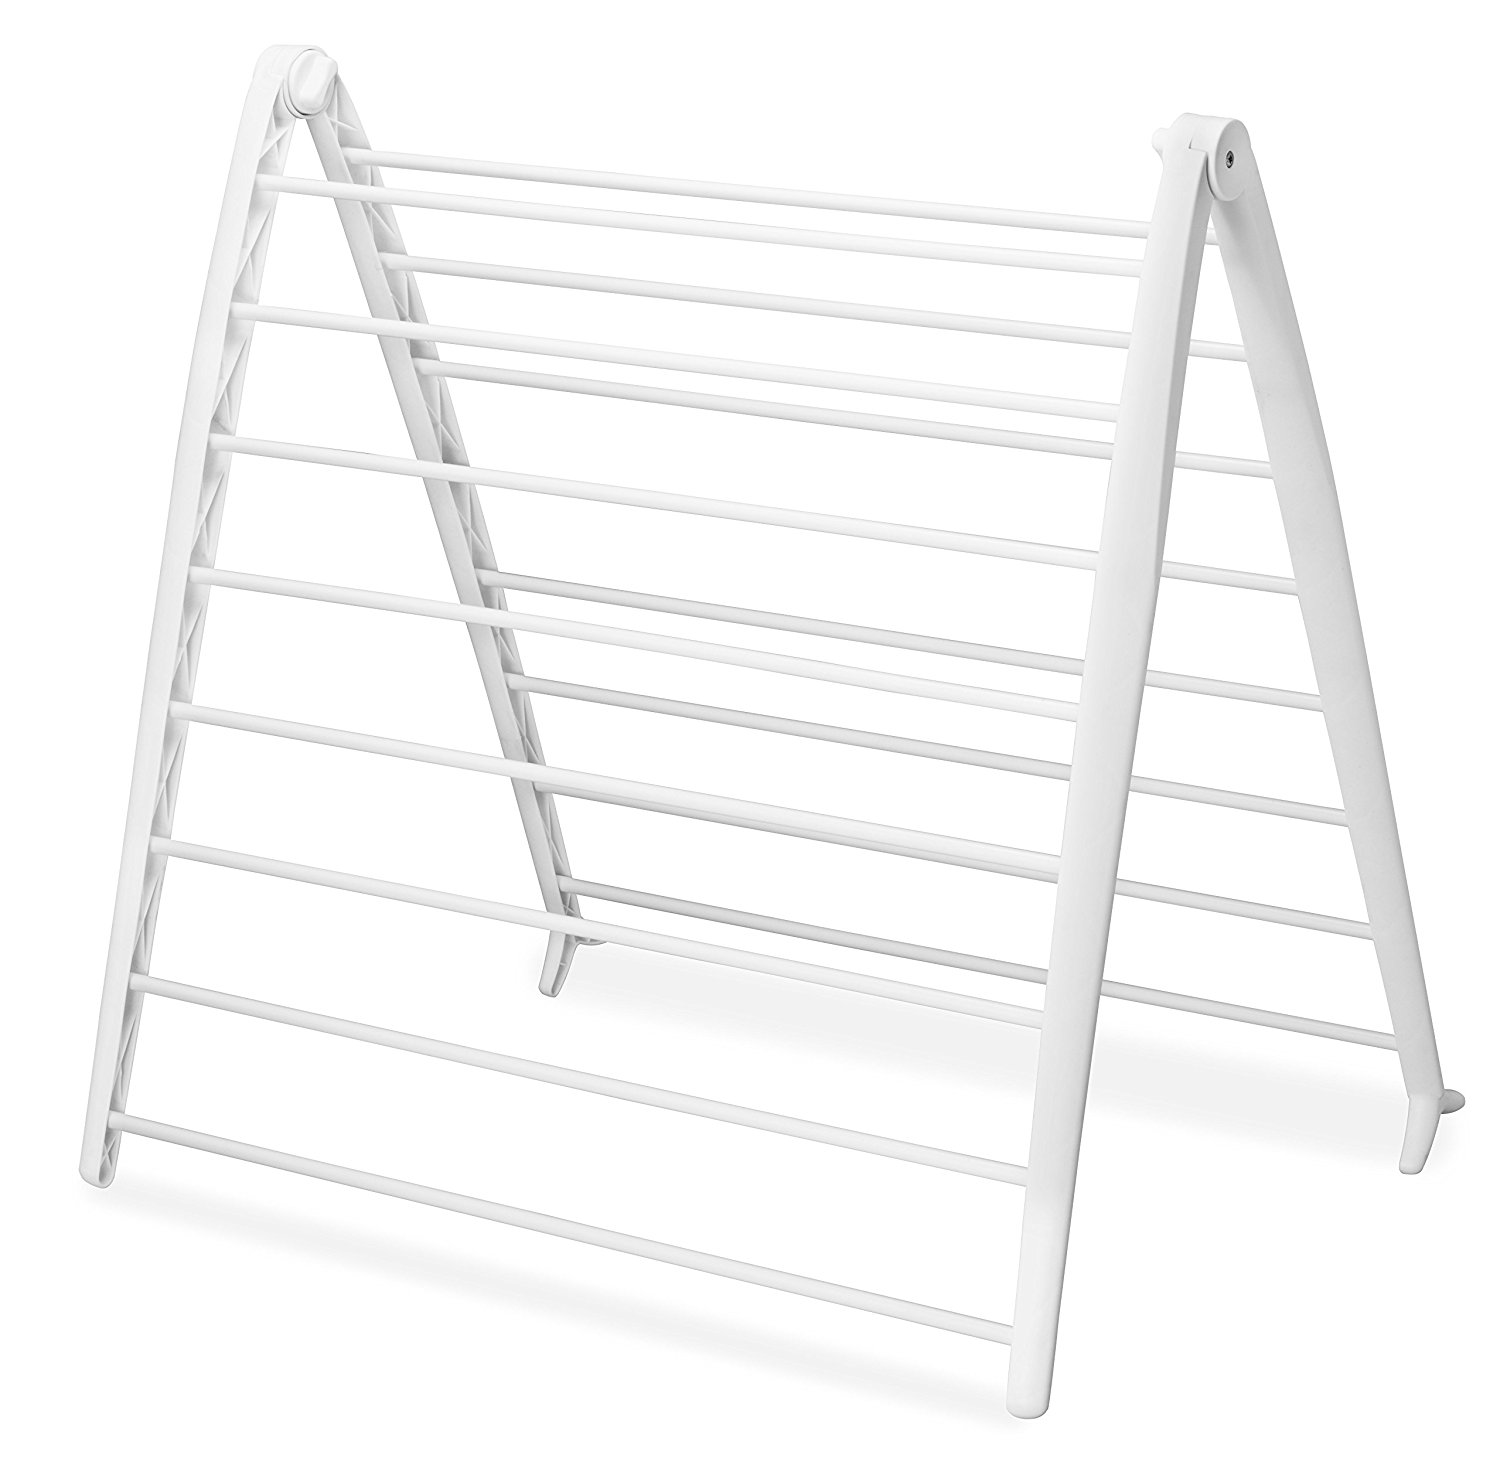 Spacemaker Drying Rack White